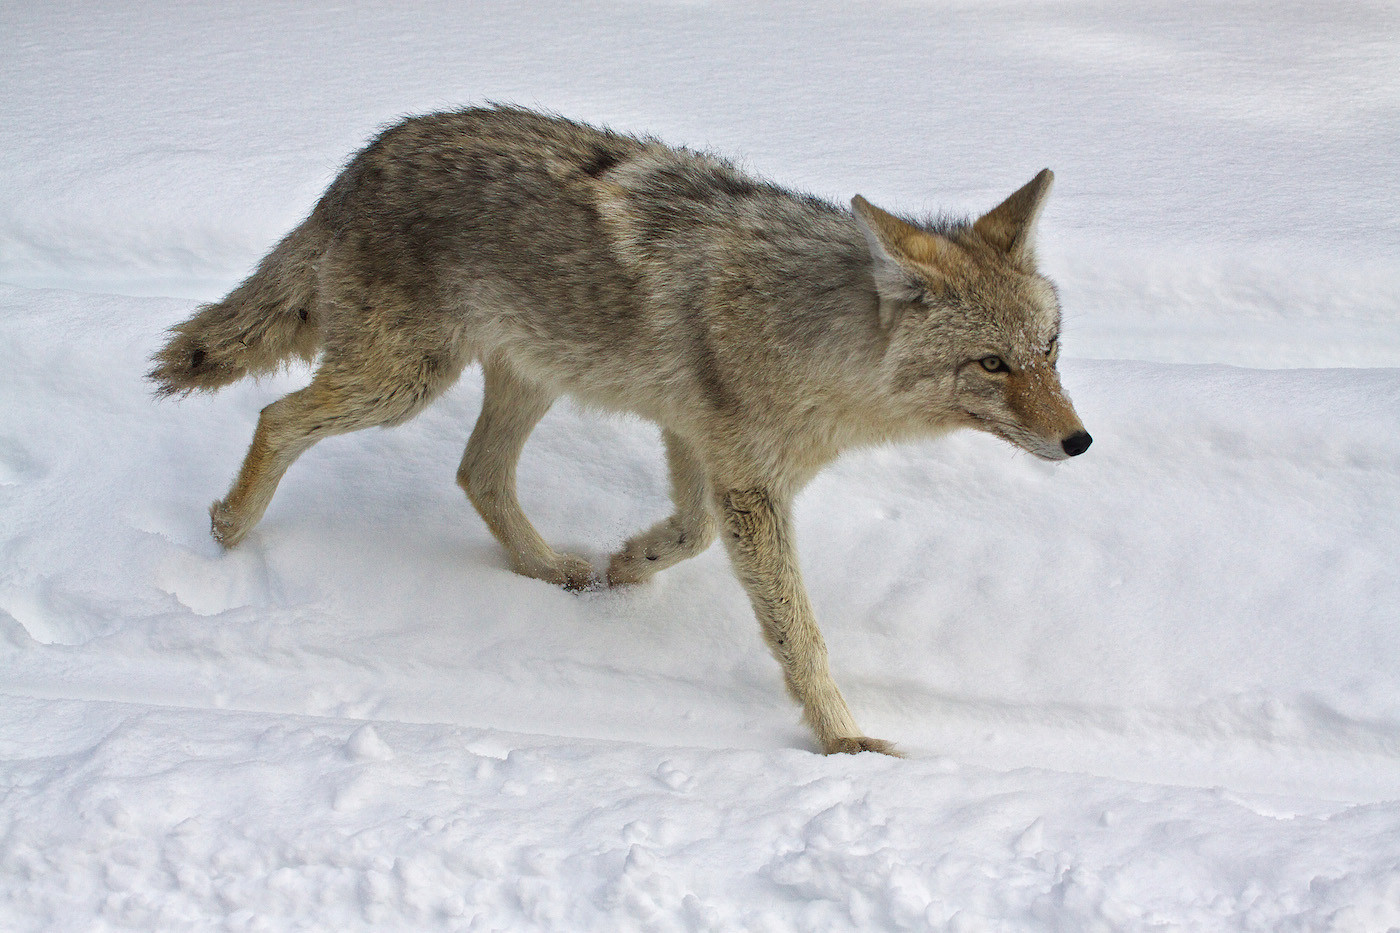 17 COYOTE by John Lewis